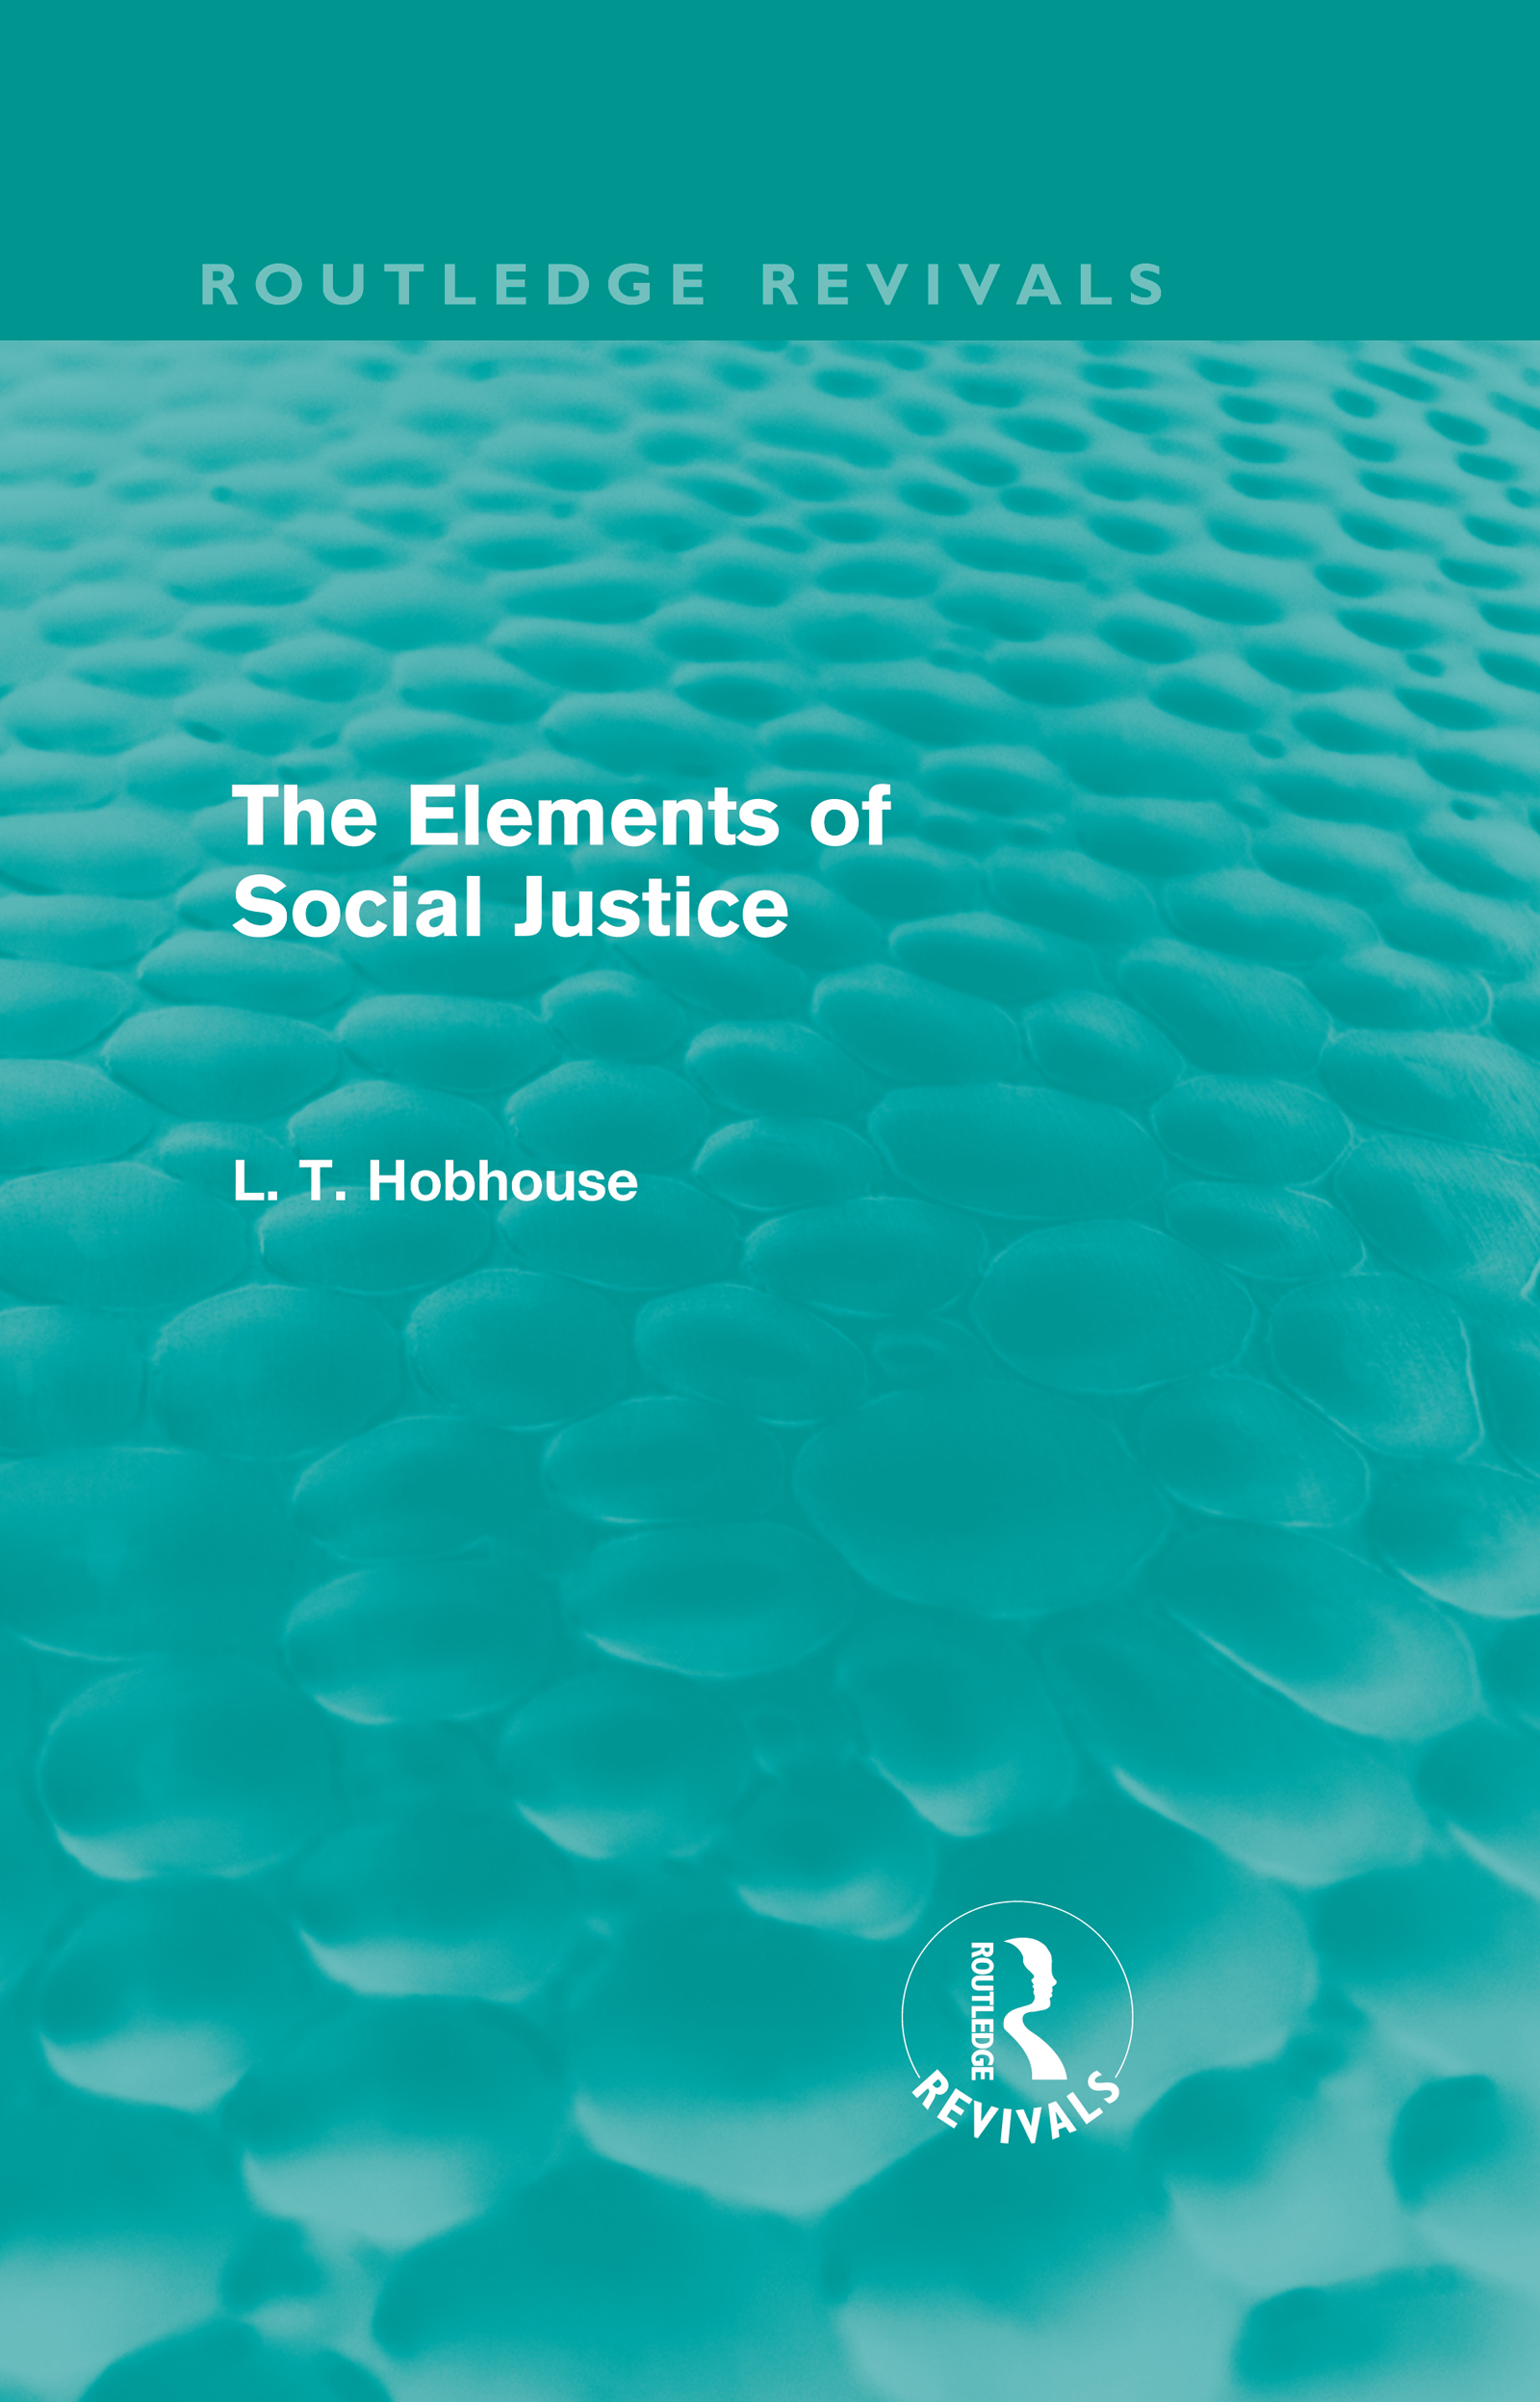 The Elements of Social Justice (Routledge Revivals) (Hardback) book cover